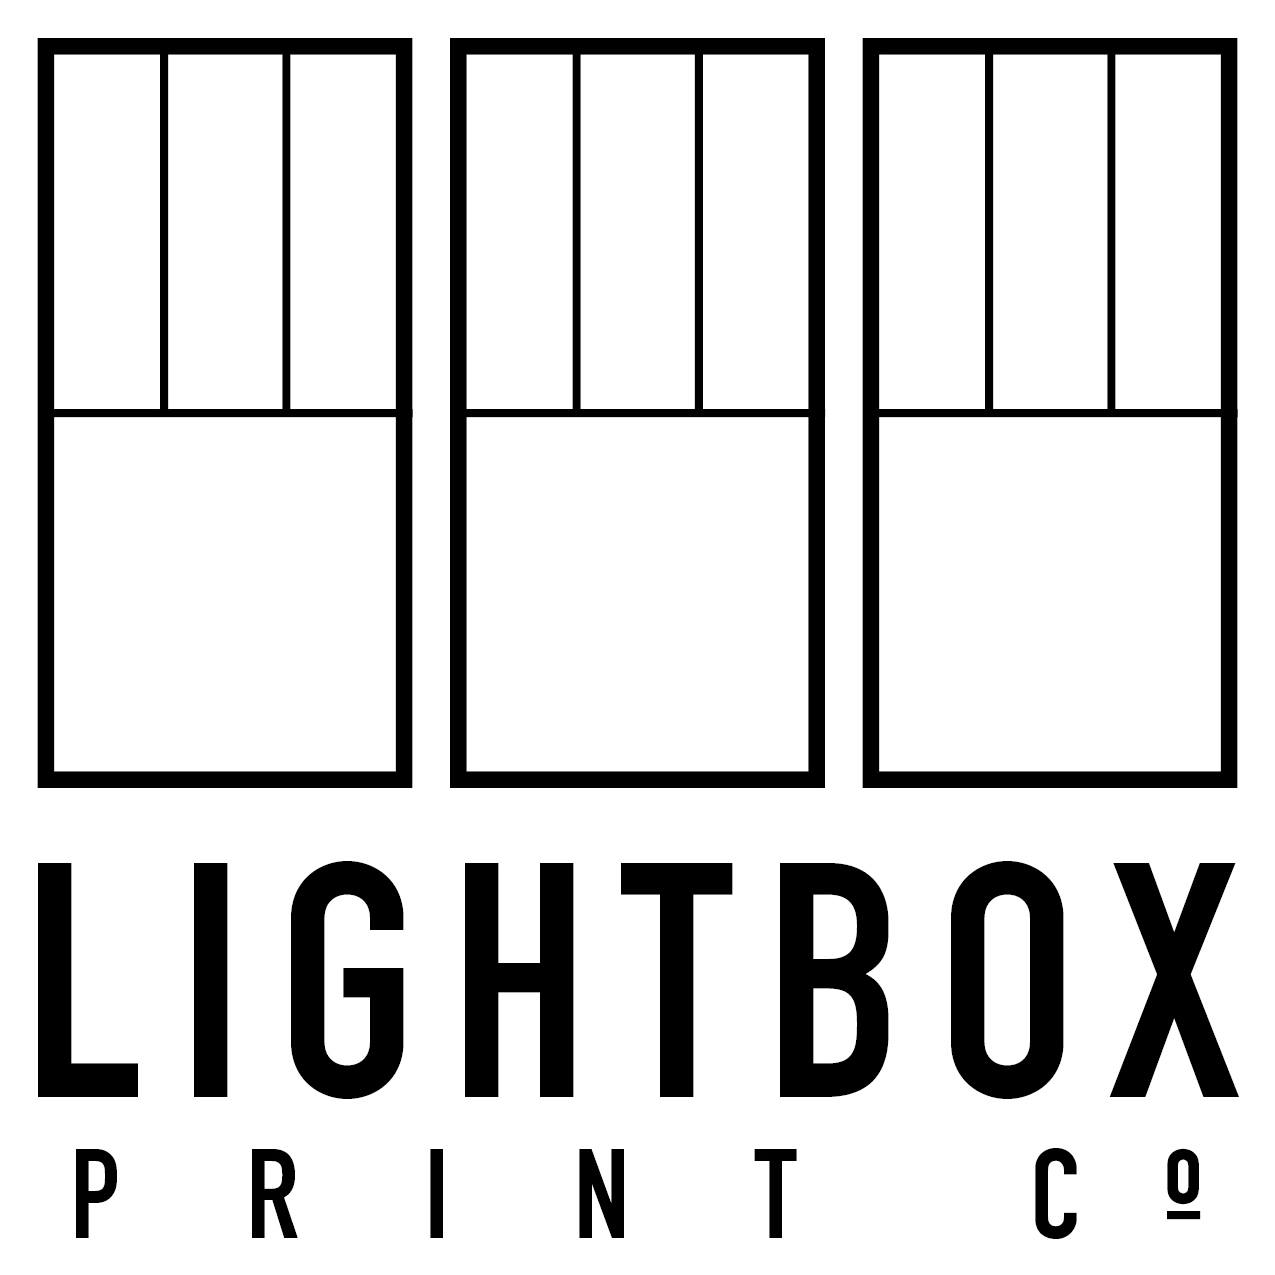 - Original and custom artwork prints, screen printed by hand by a husband & wife artist duo in Richmond, VA. Inspired by architecture, food, and travel.Lightbox Print Co. printed our kickass posters for the tour - thank you!